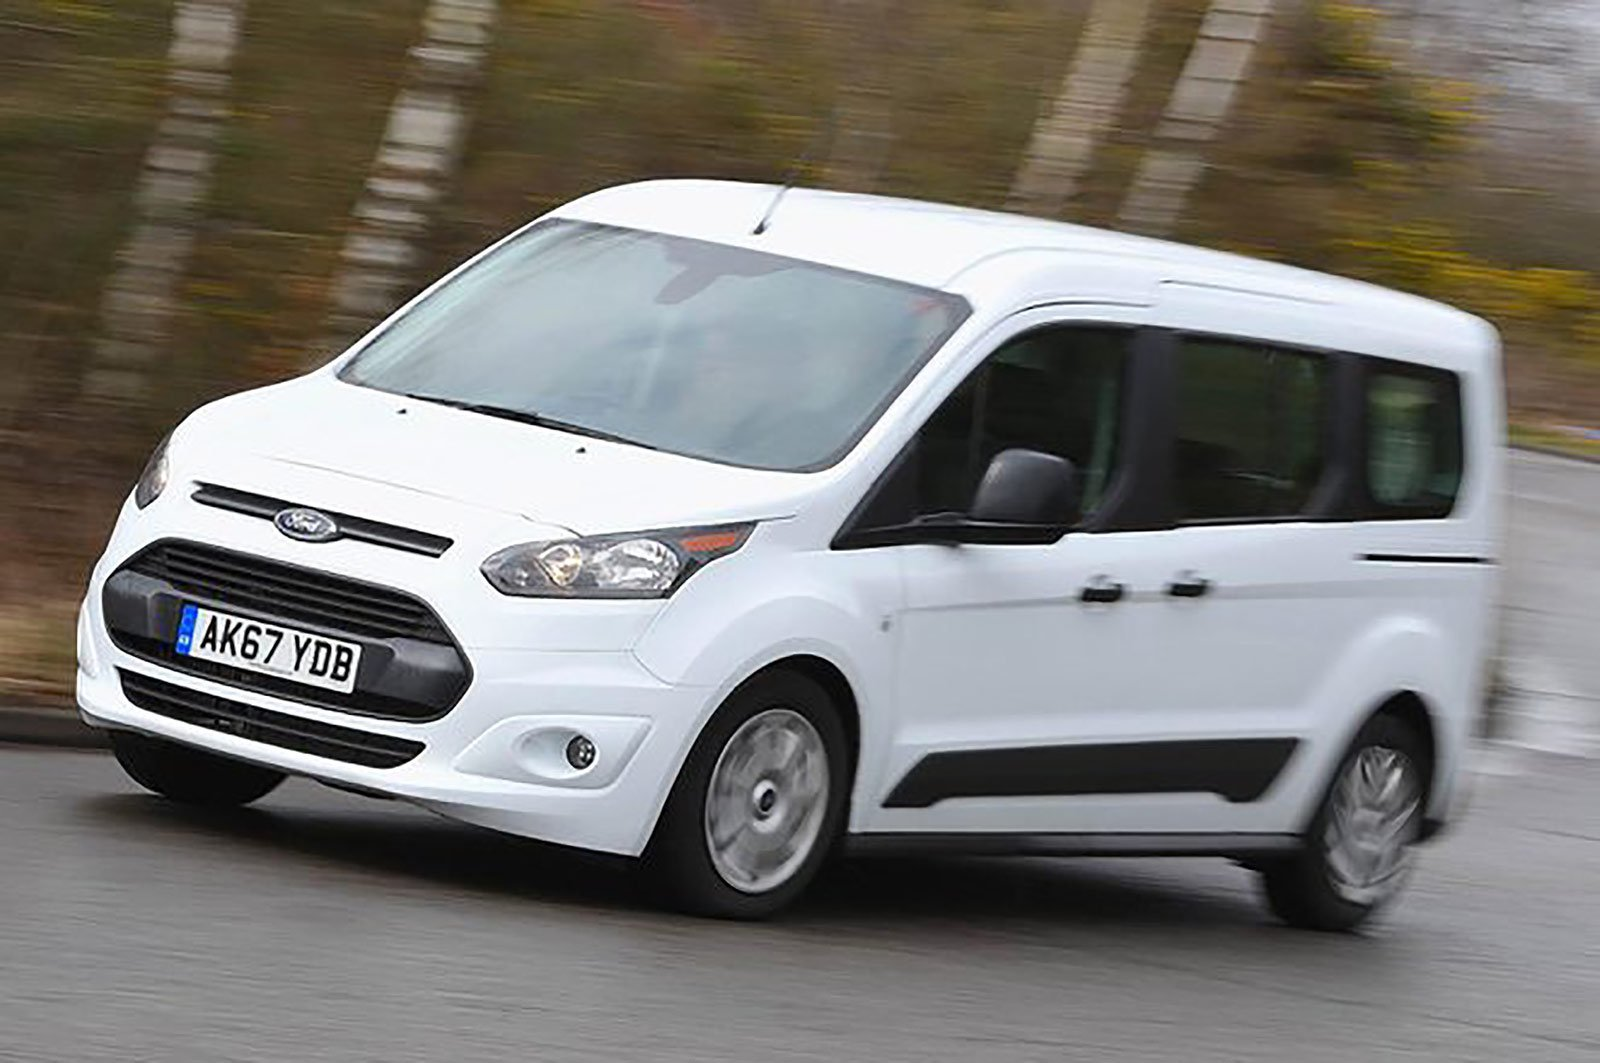 Ford Tourneo front and side